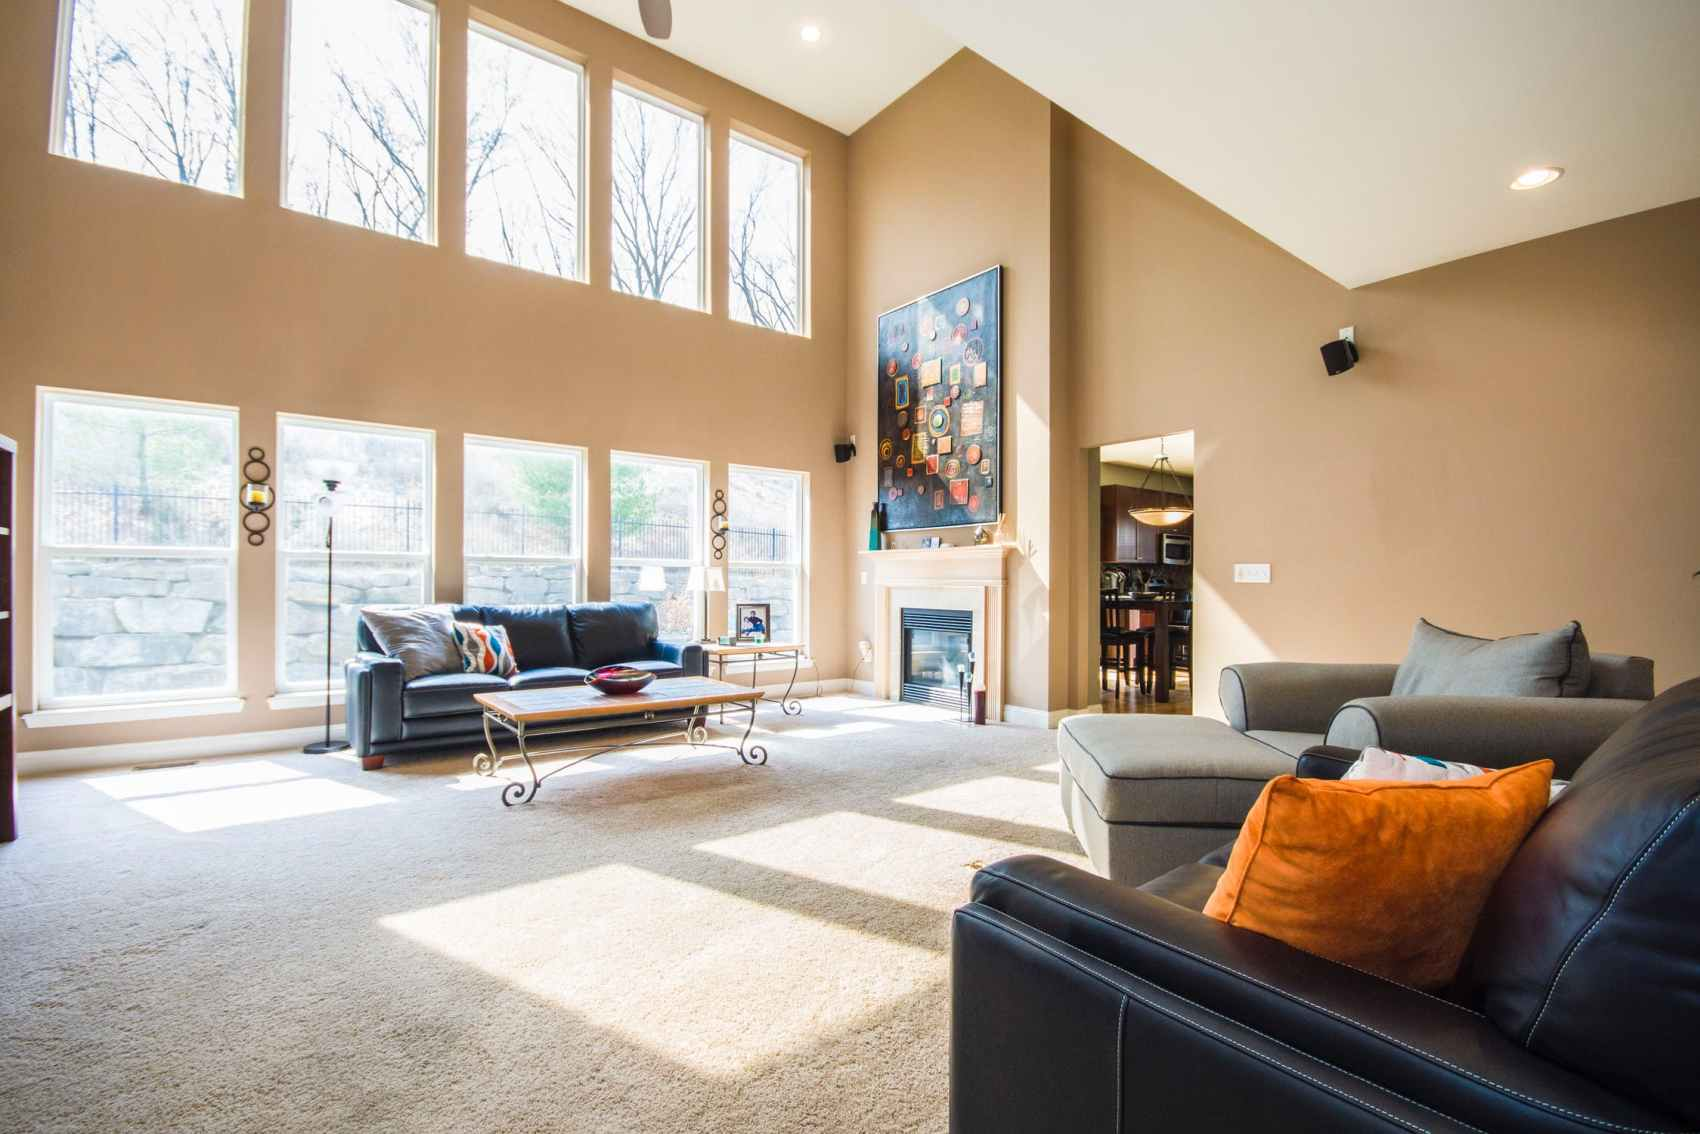 Three Reasons Window Film Should Be On Your Home Improvement List